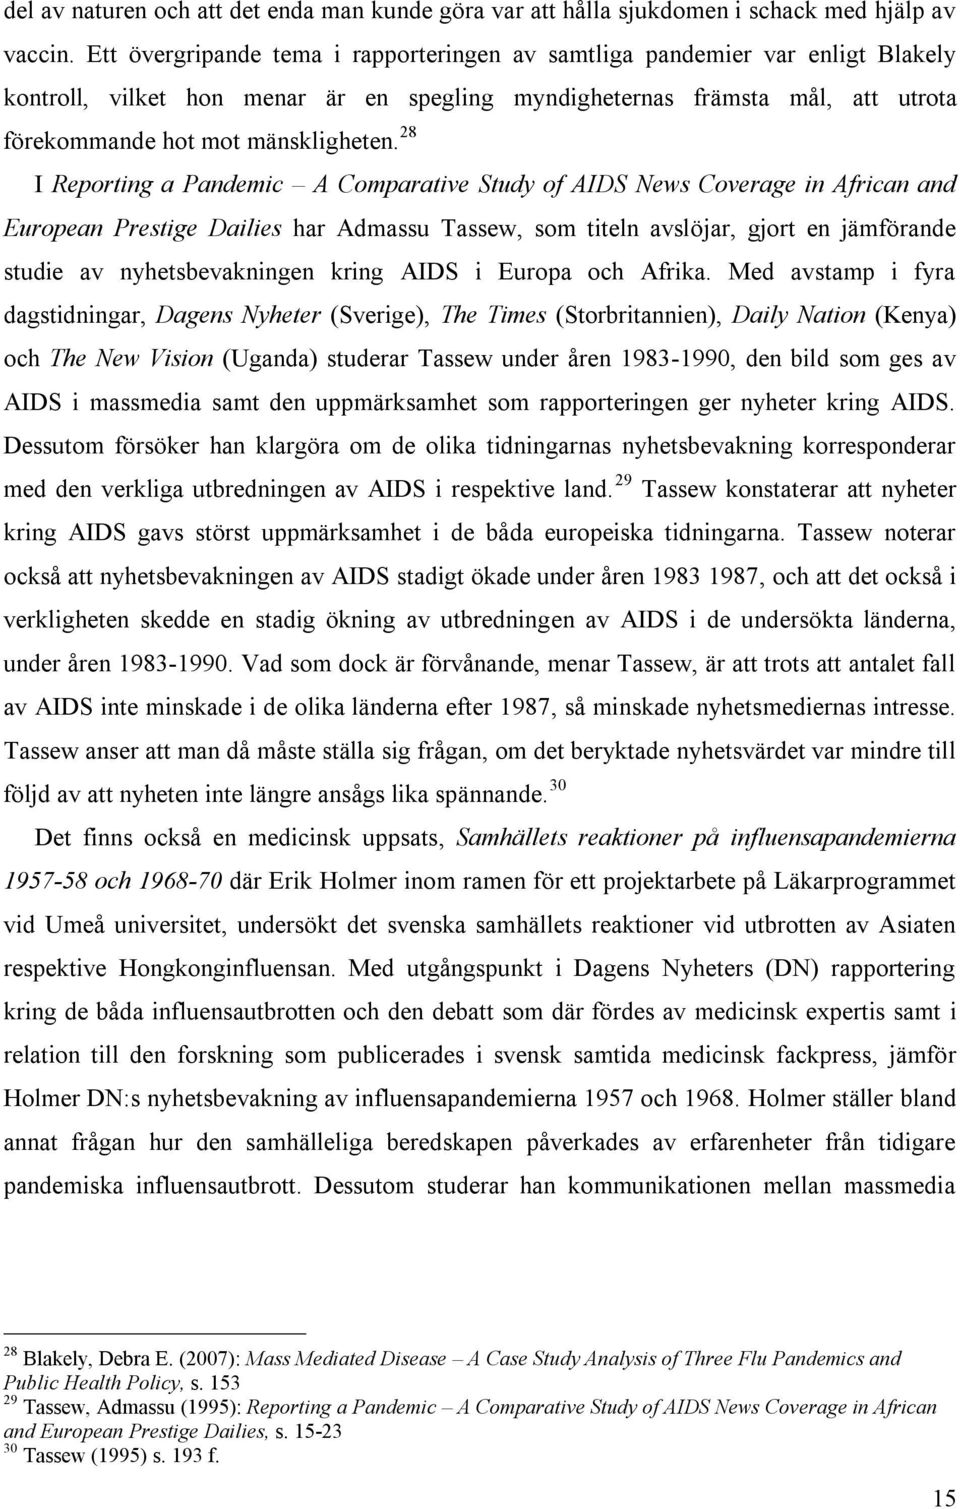 28 I Reporting a Pandemic A Comparative Study of AIDS News Coverage in African and European Prestige Dailies har Admassu Tassew, som titeln avslöjar, gjort en jämförande studie av nyhetsbevakningen